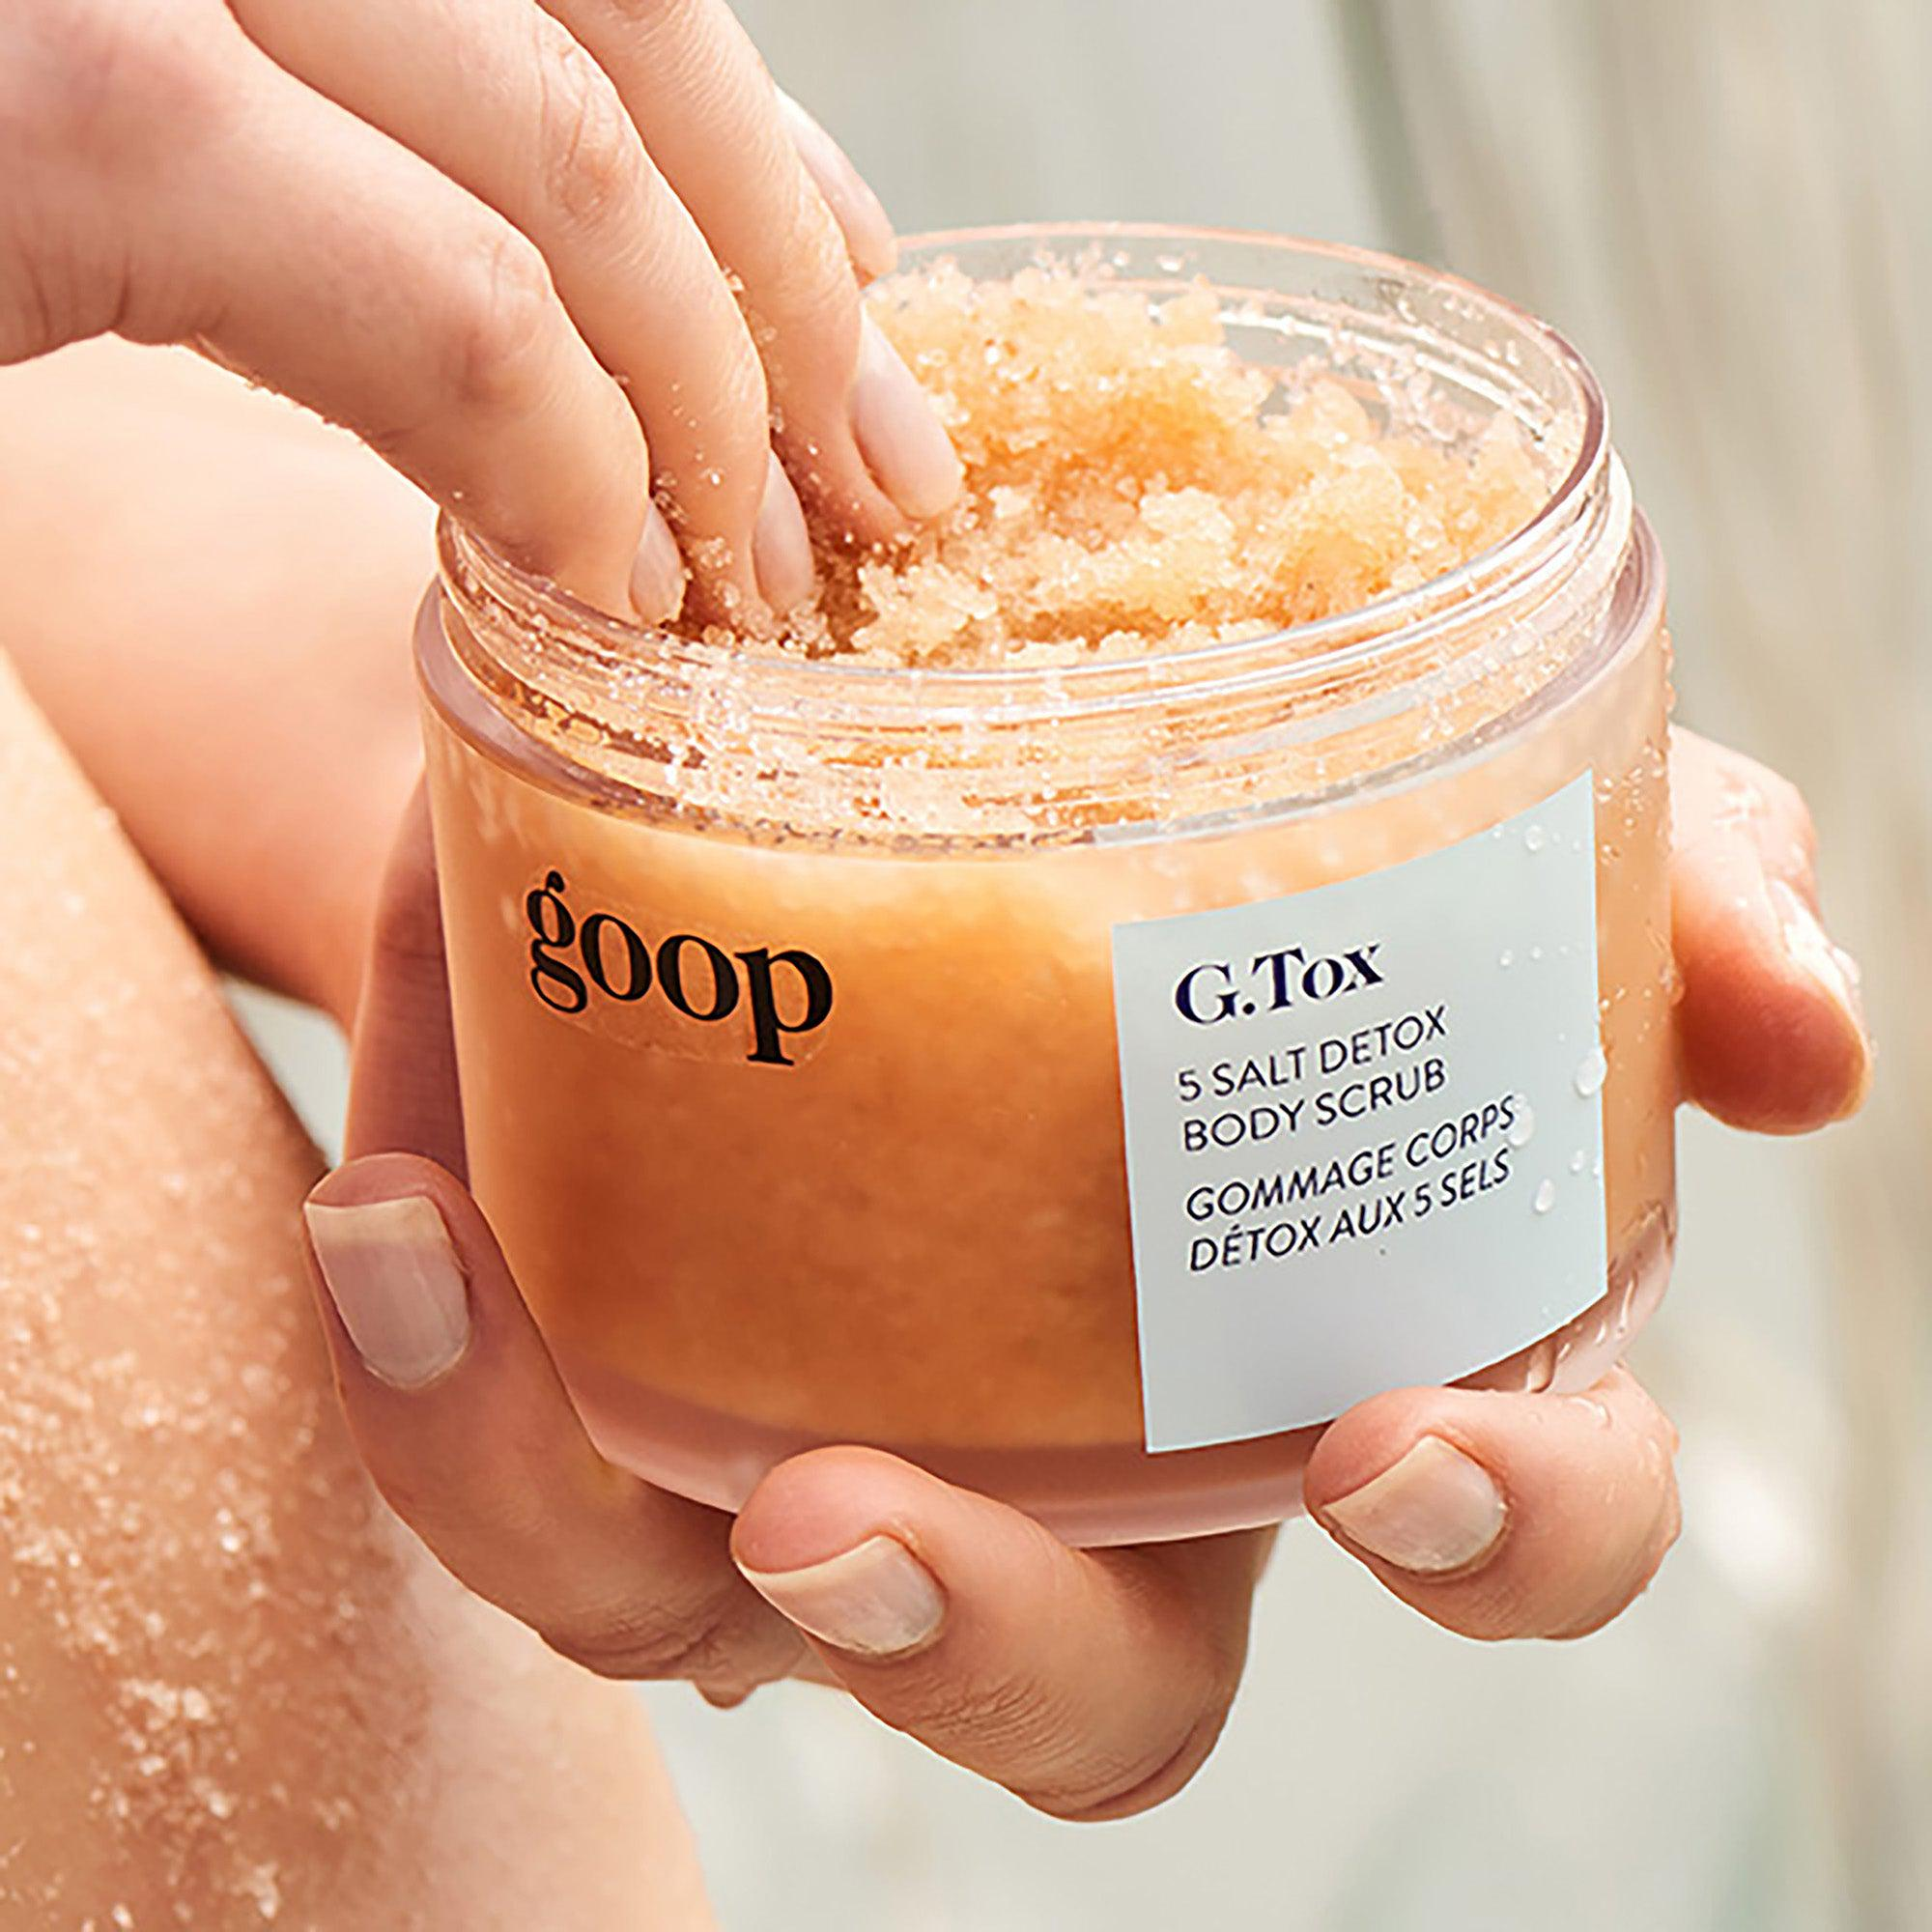 G.Tox 5 Salt Detox Body Scrub